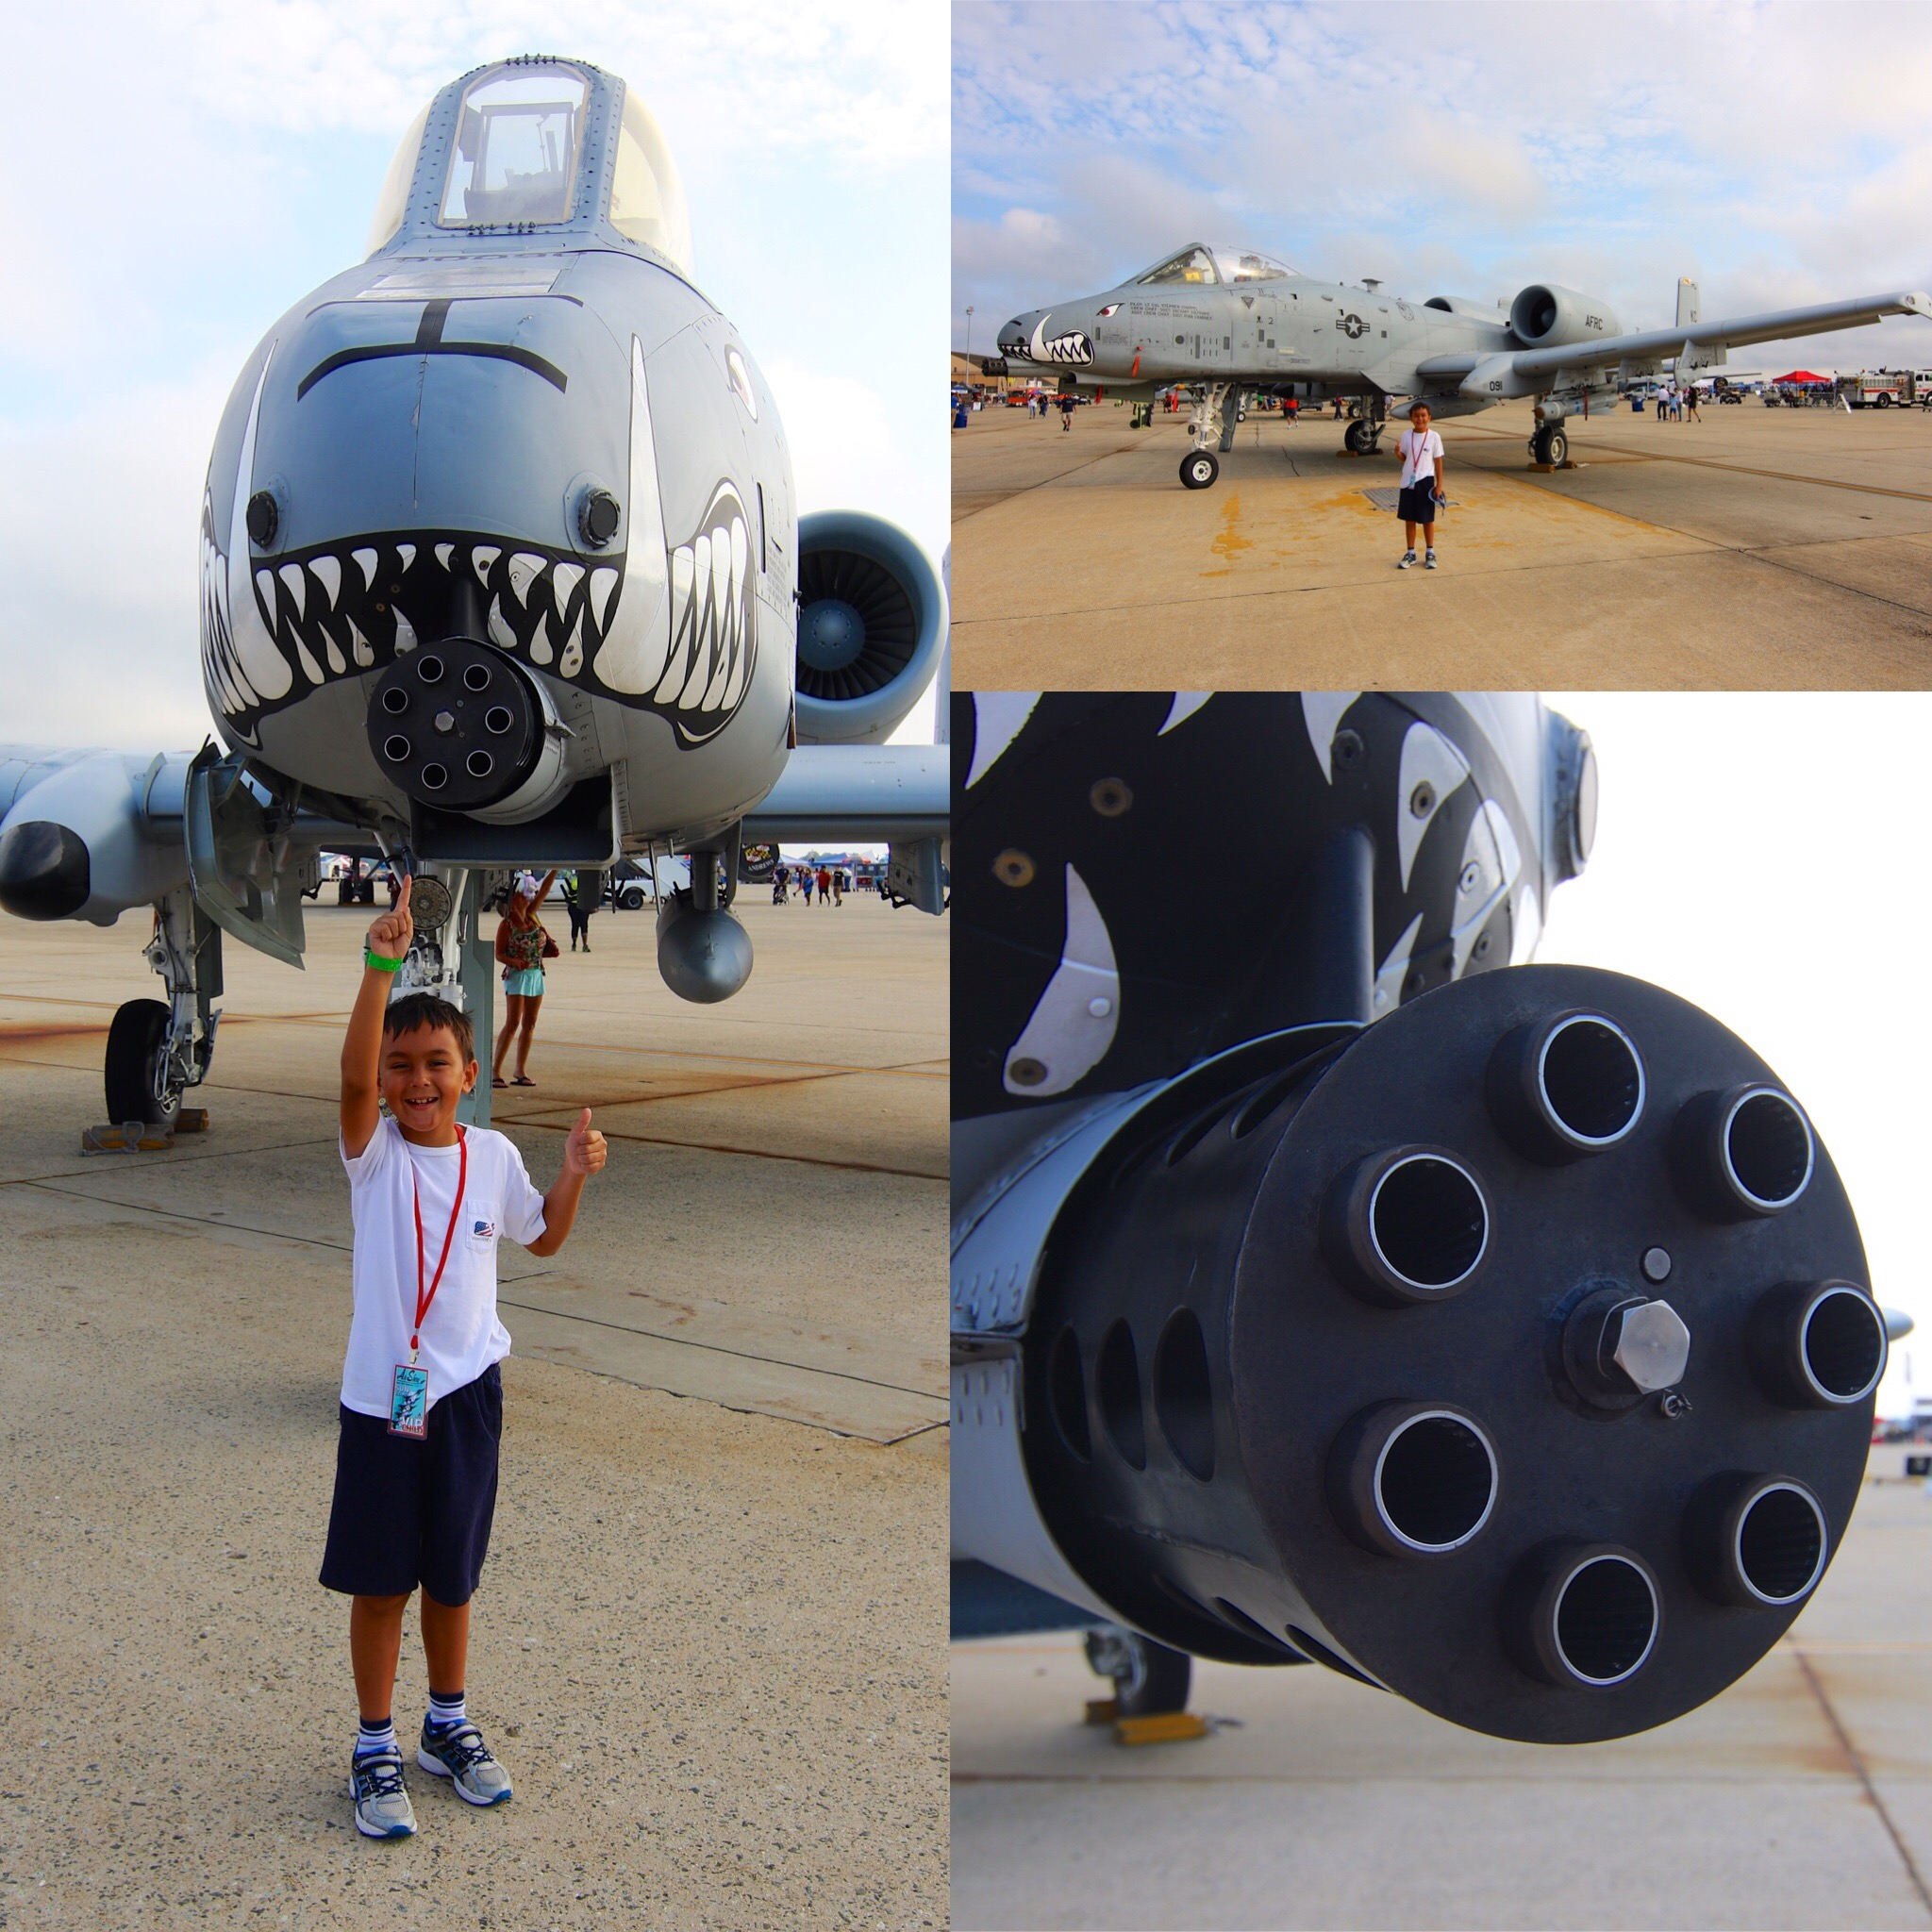 William is pure B-O-Y. His favorite aircraft is the A-10 Warthog, and it's the first one he wanted to see! BRRRRRRTTT!!!!!